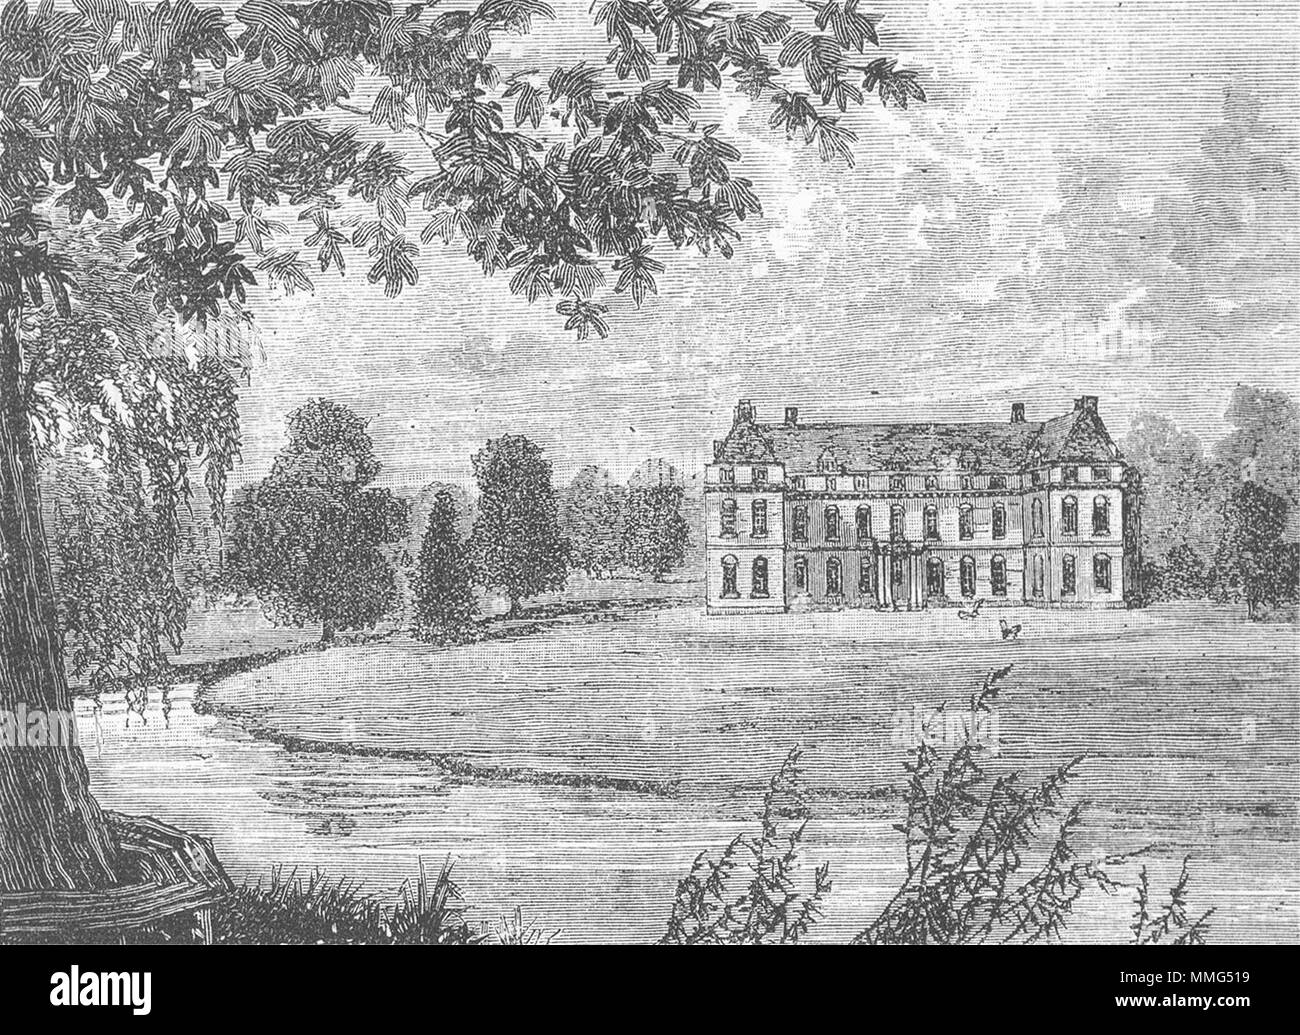 MITCHAM. Mitcham Grove in 1796 (from an old print) 1888 antique - Stock Image